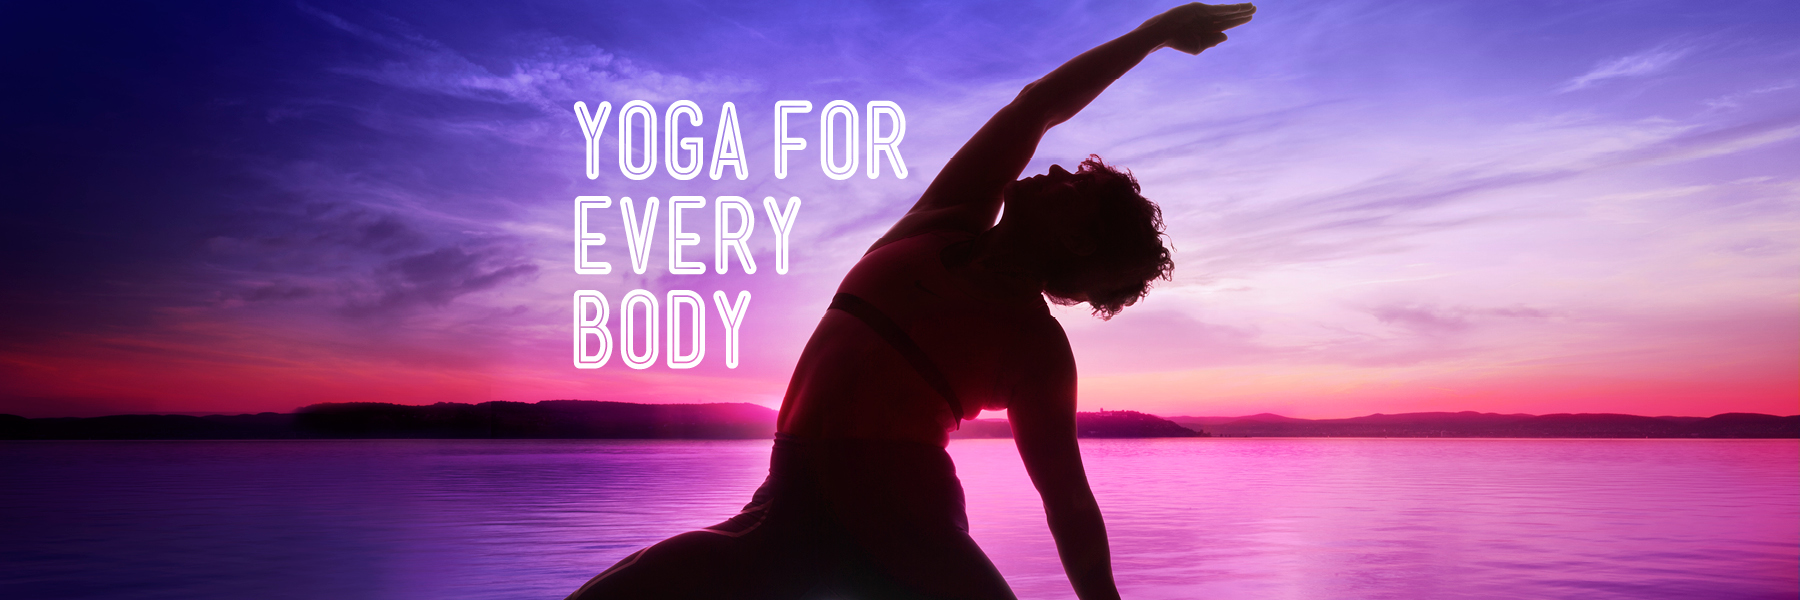 How can I improve my memory power and concentration through yoga? 3